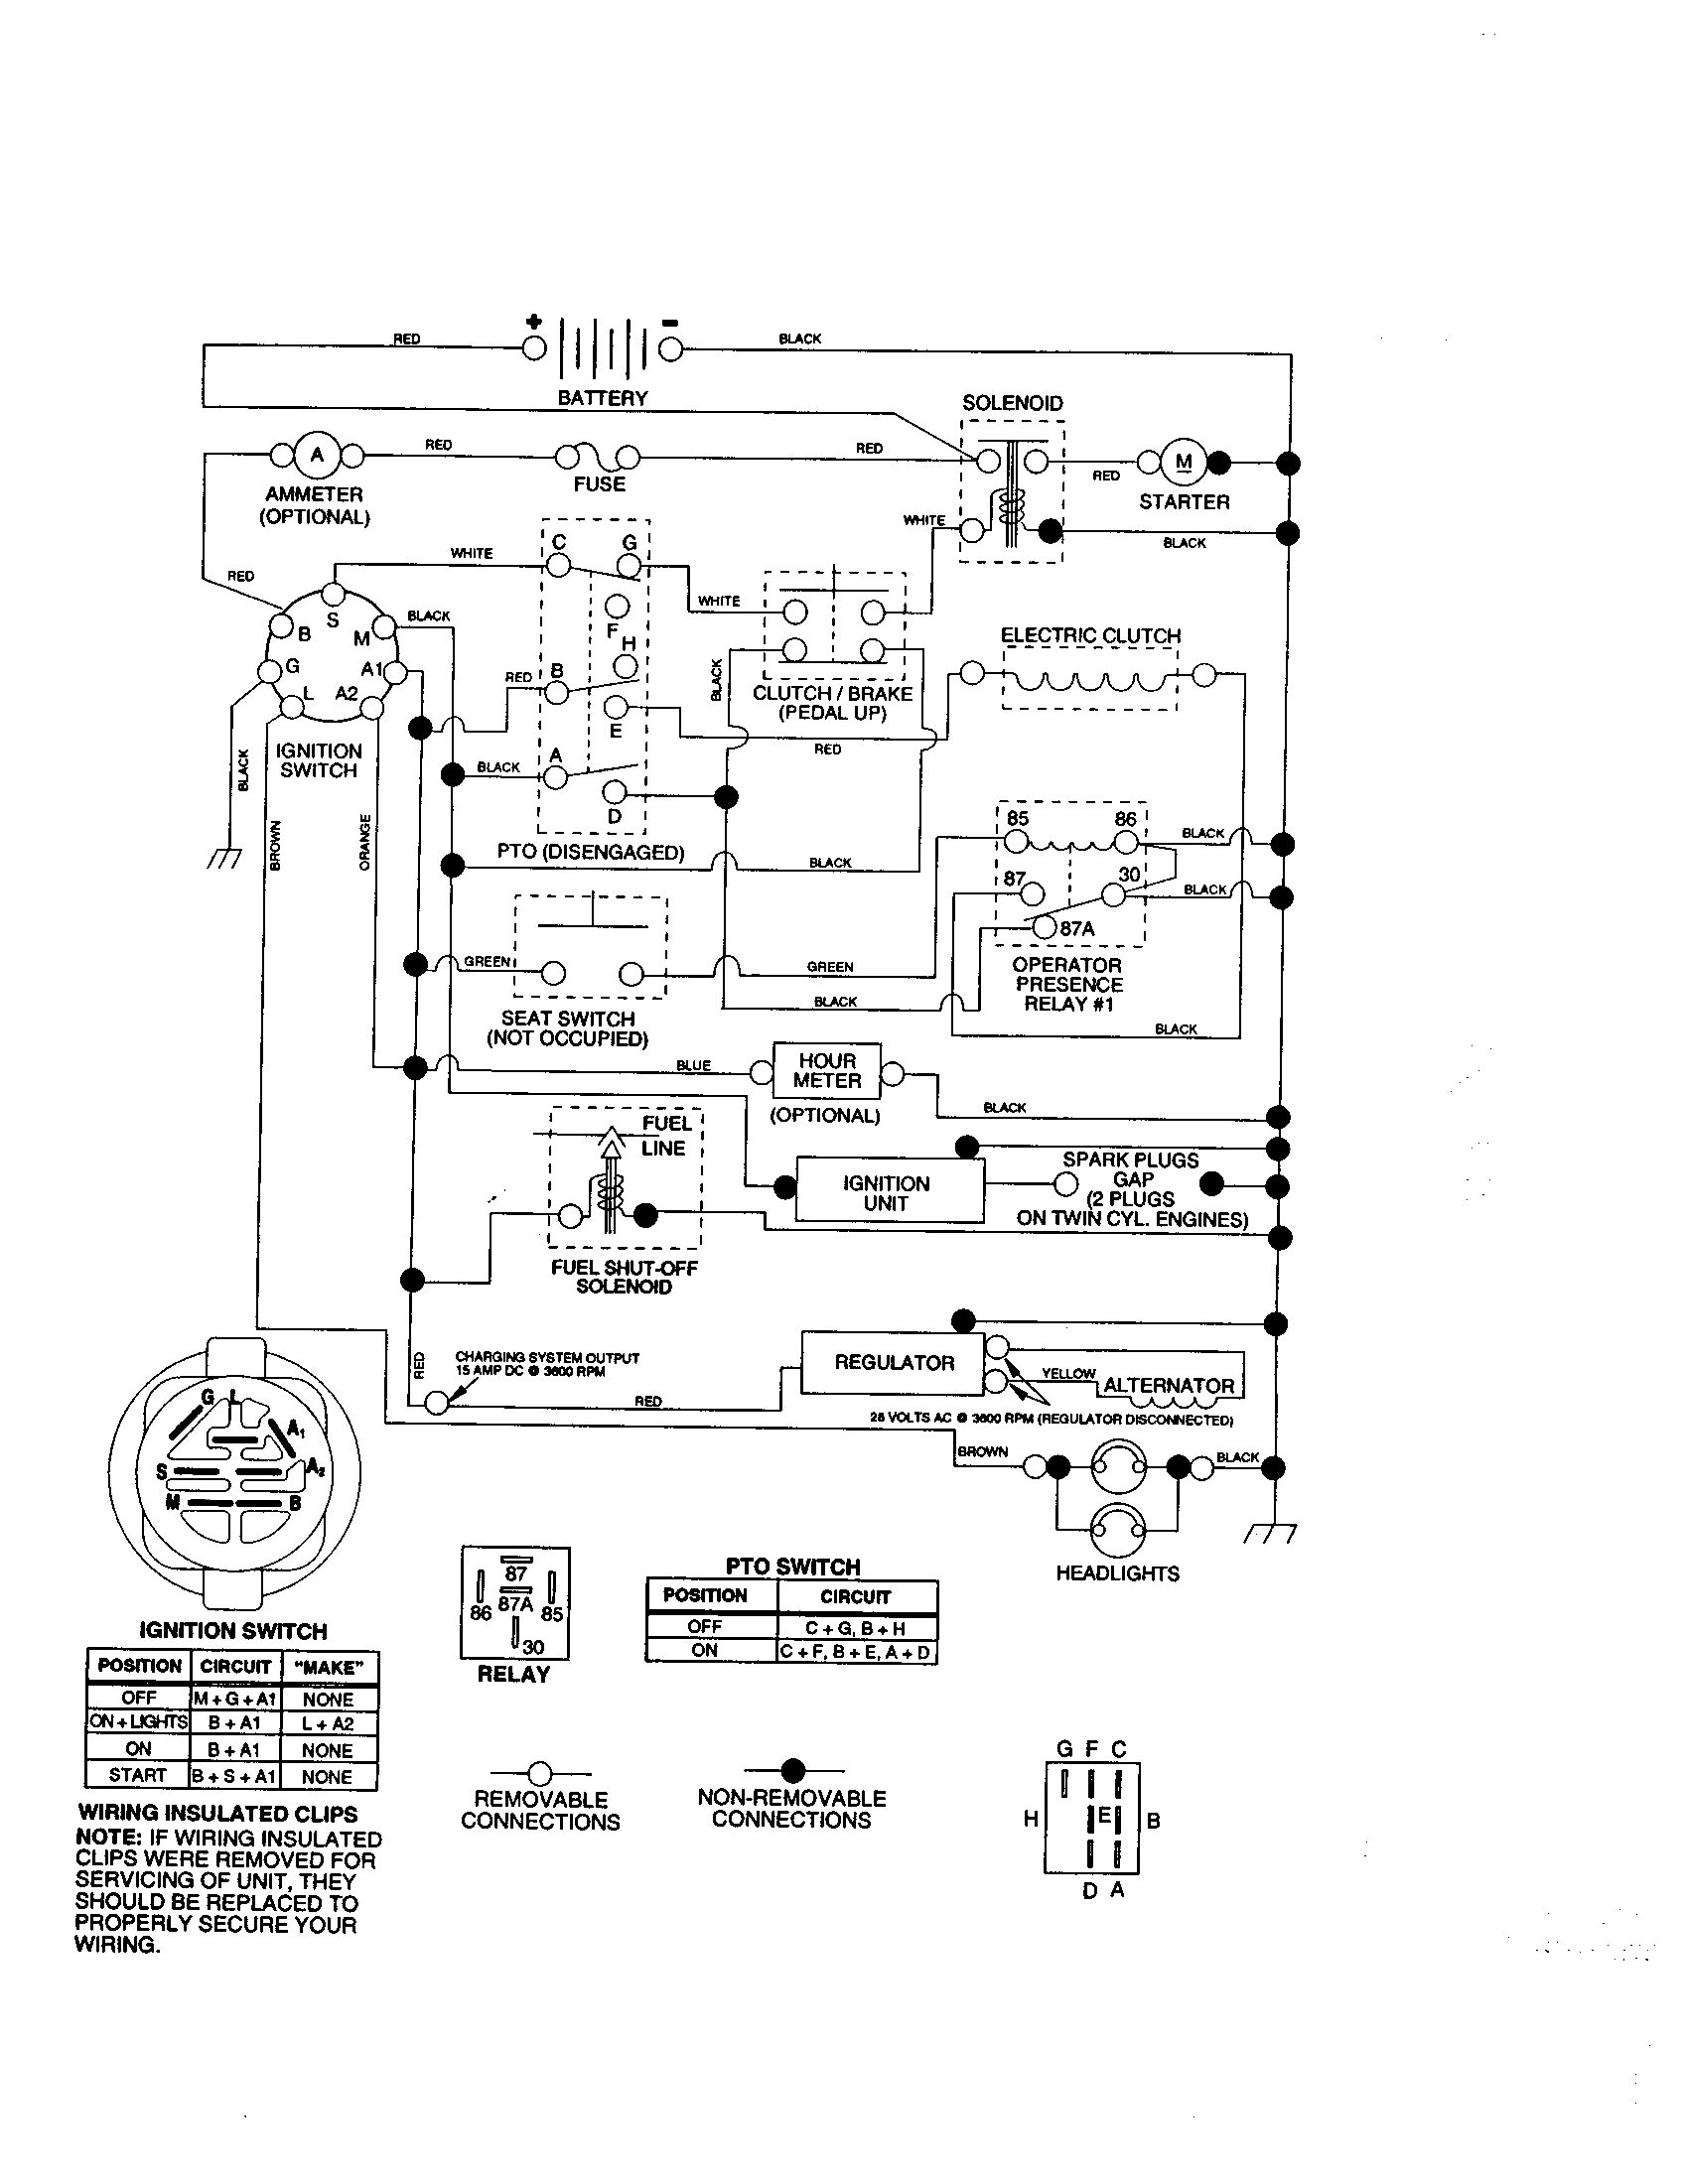 Craftsman lawn tractor parts model 917273070 sears partsdirect rh searspartsdirect kohler engine wiring diagrams kohler ignition wiring diagram